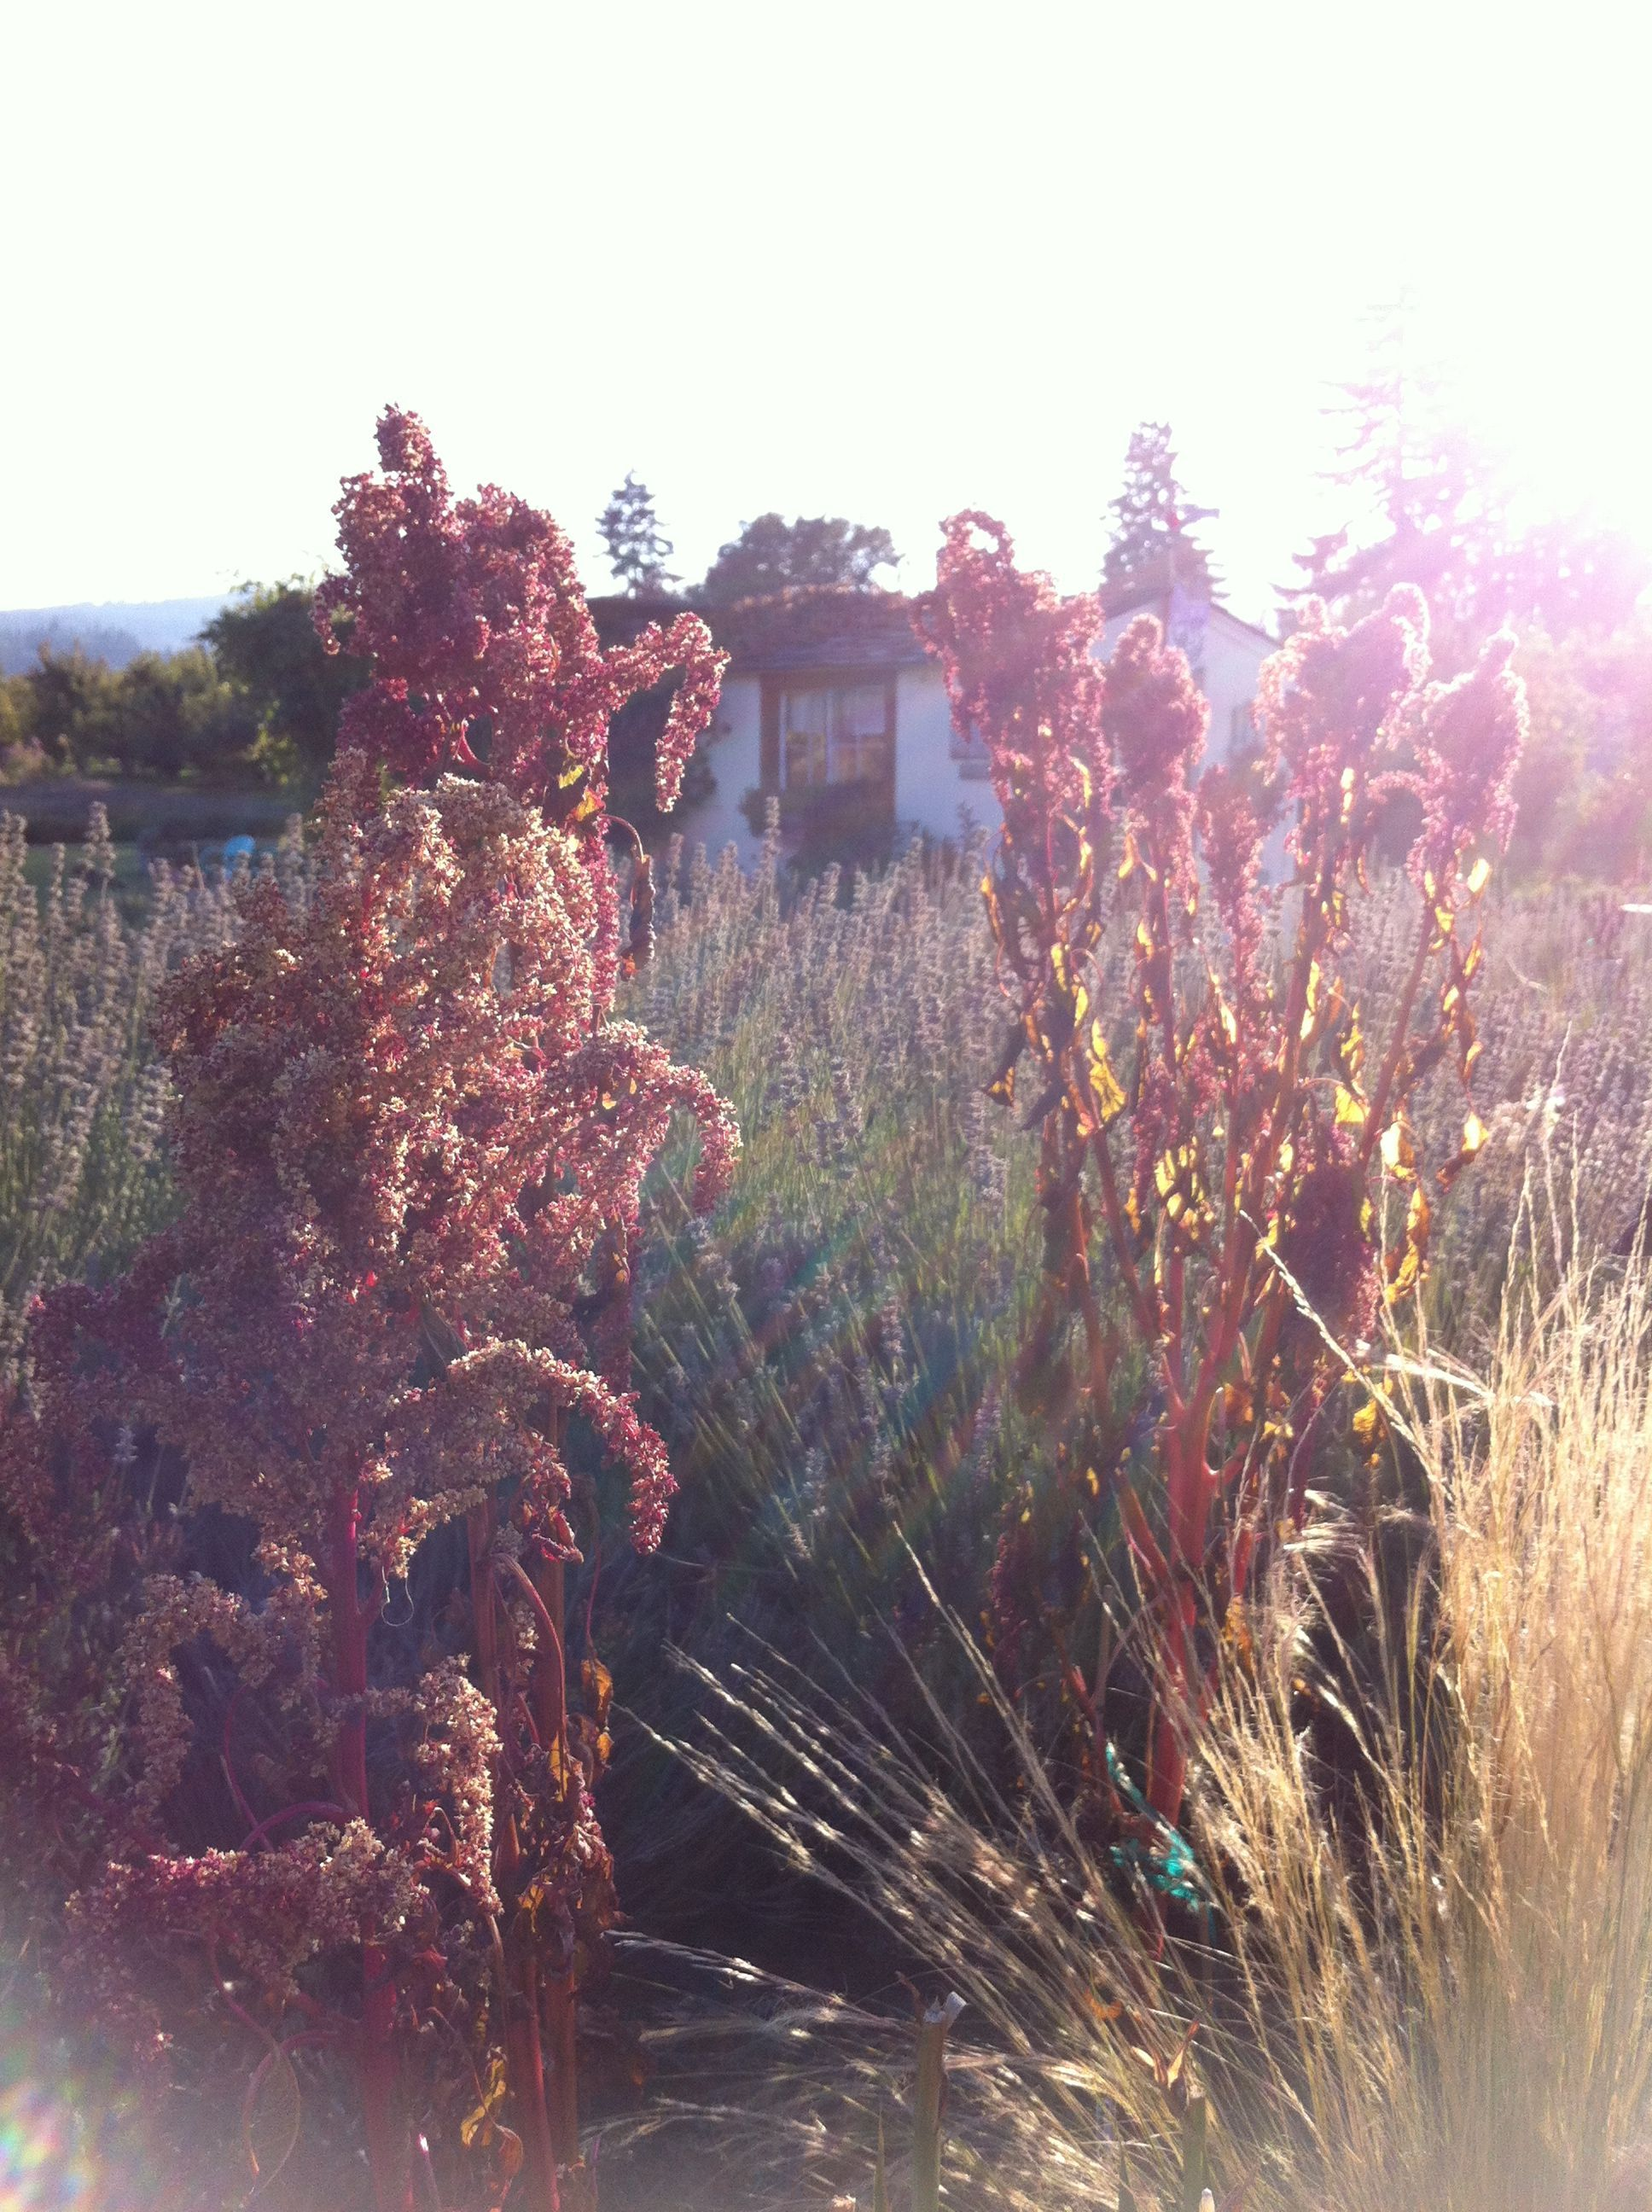 Amaranth, Love Lies Bleeding, after Mr.Frost visits our lavender farm. Oct.7,2012 #amaranth #mrfrost #sunset #lavenderfarm #hoodriver #october7 #garden #autumn #loveliesbleeding